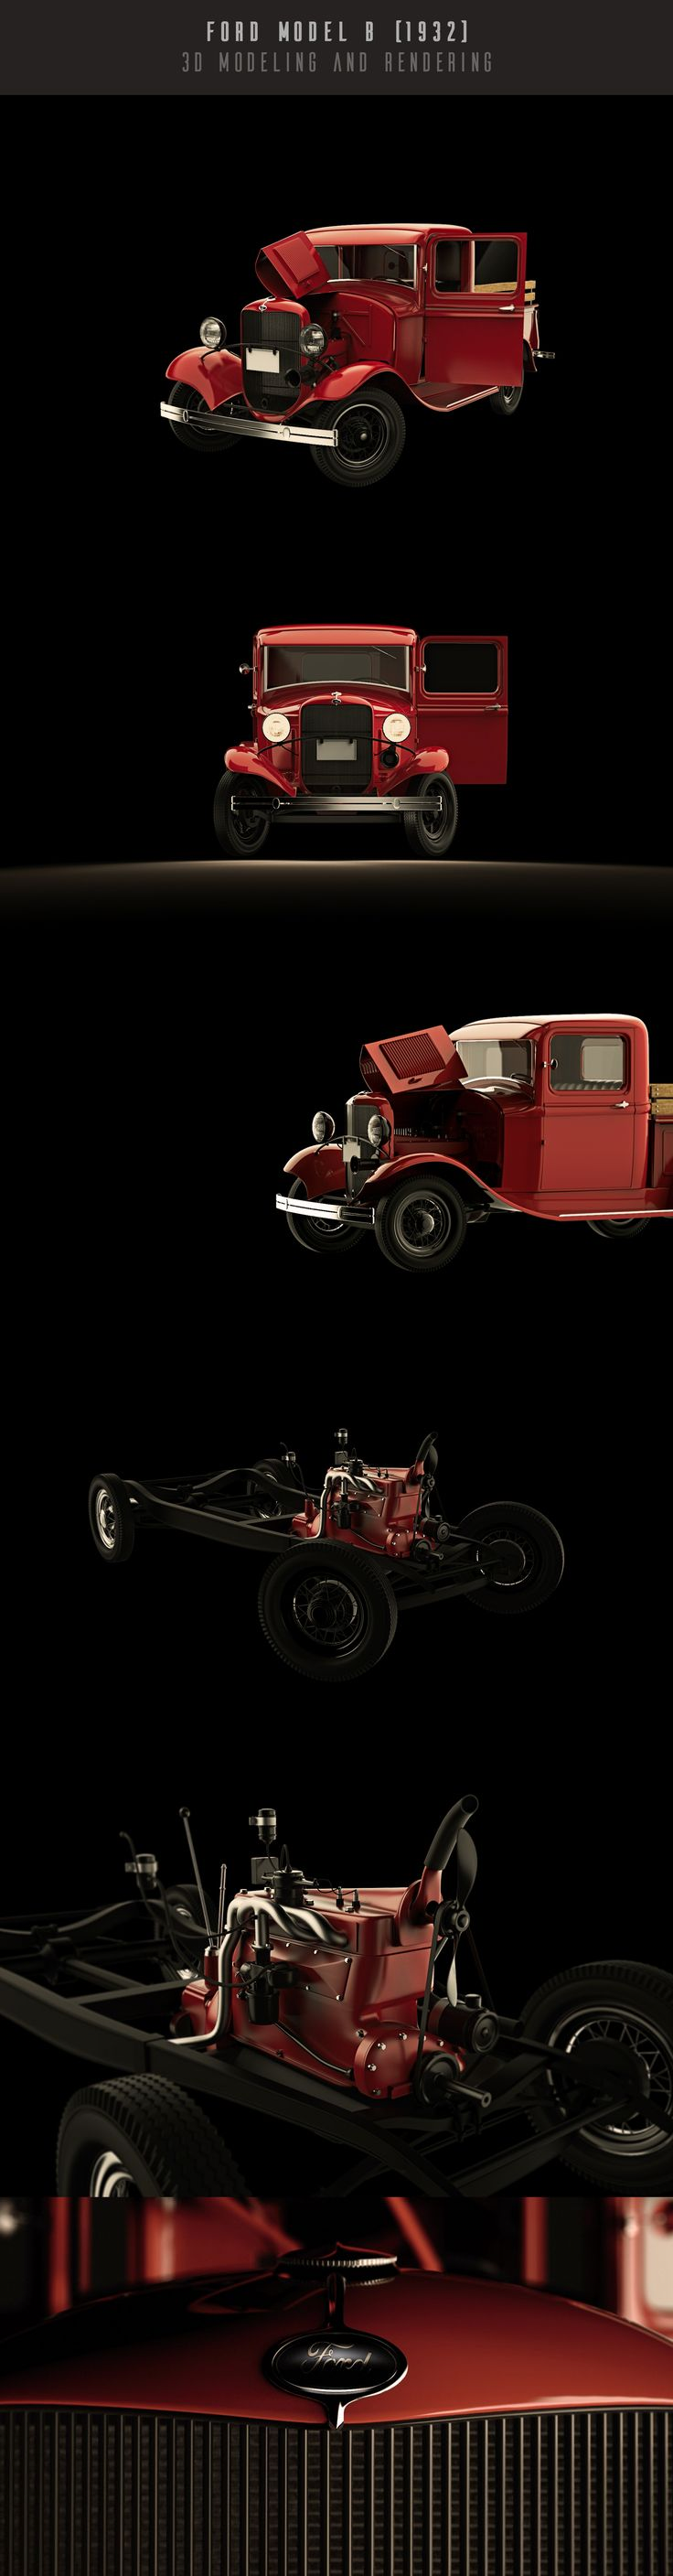 "Check out my @Behance project: ""1932 Ford Model B - 3D Modeling and Rendering"" https://www.behance.net/gallery/53028489/1932-Ford-Model-B-3D-Modeling-and-Rendering"